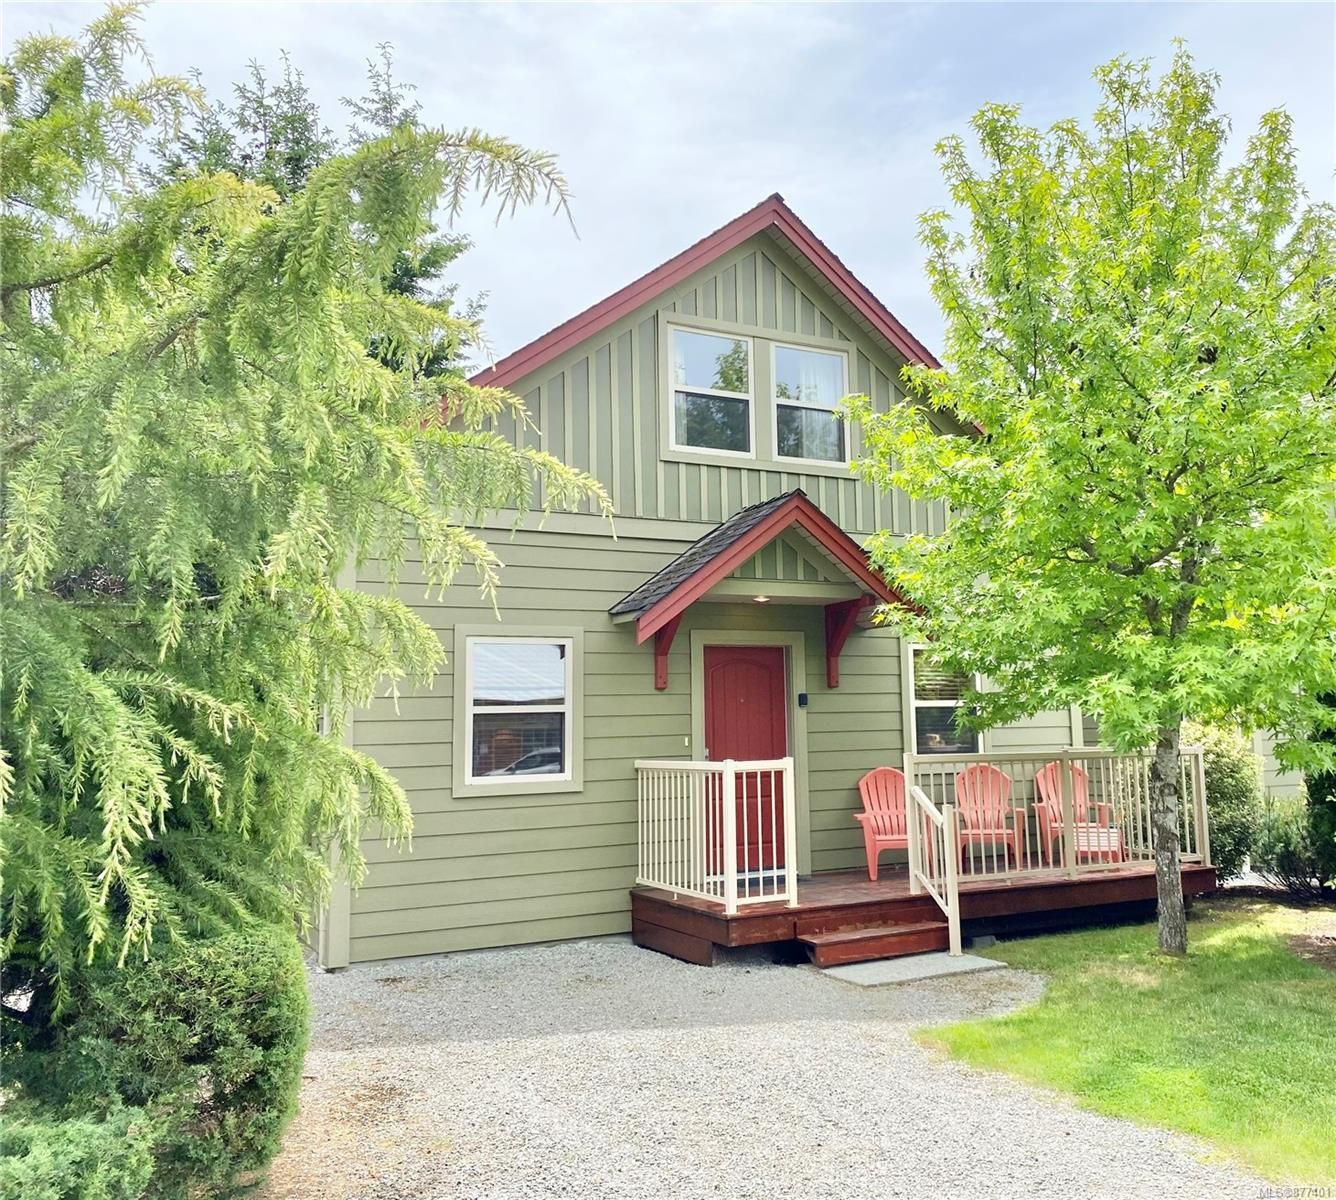 Main Photo: 124 1080 Resort Dr in : PQ Parksville Row/Townhouse for sale (Parksville/Qualicum)  : MLS®# 877401